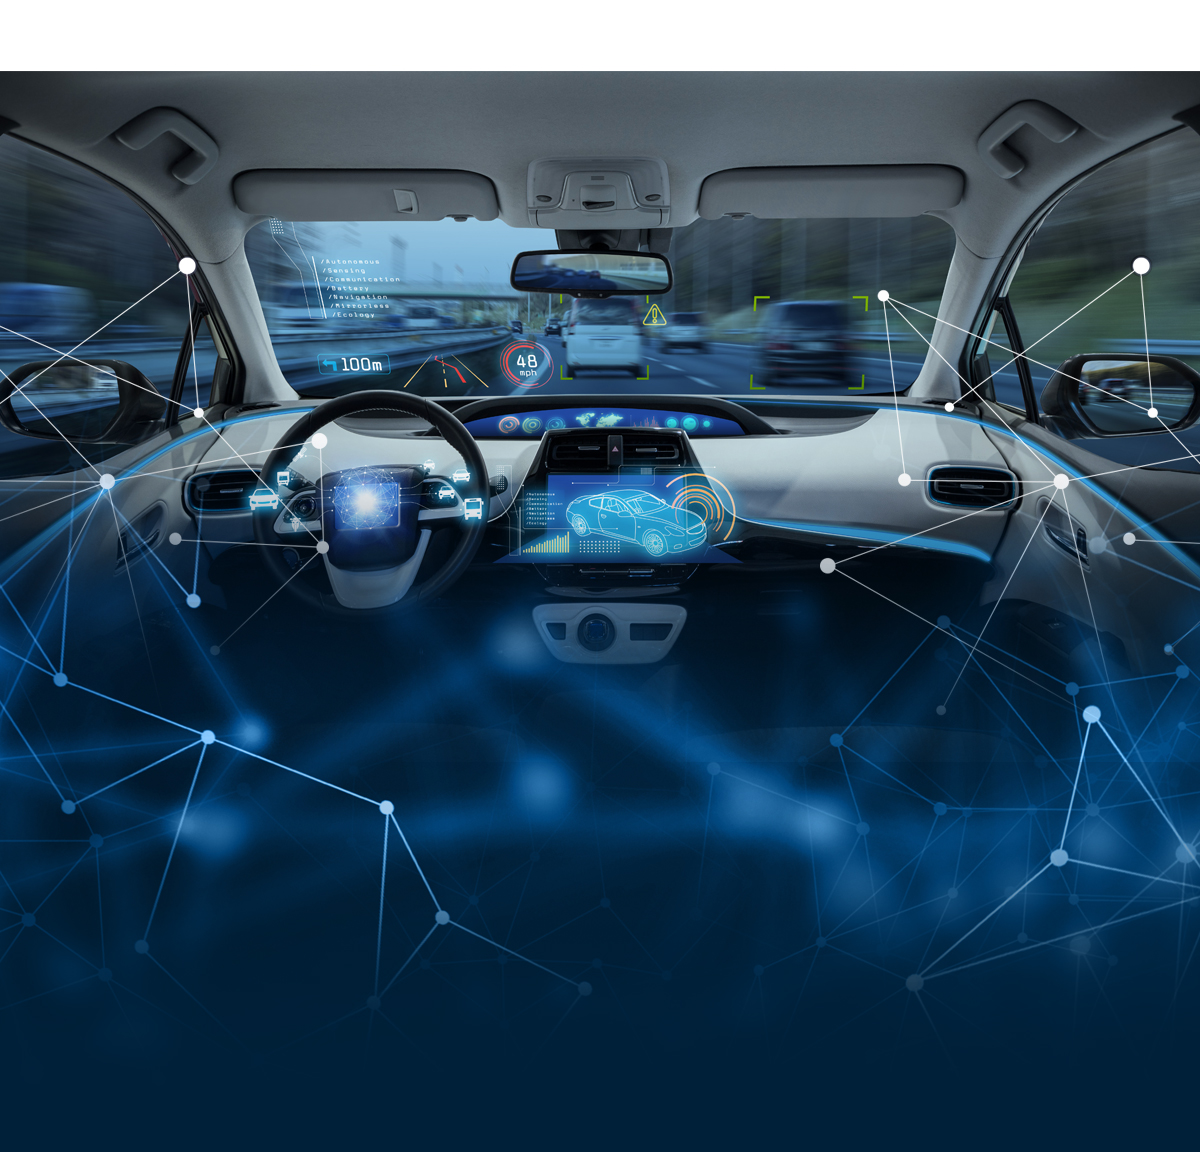 Autonomous Vehicles - Background